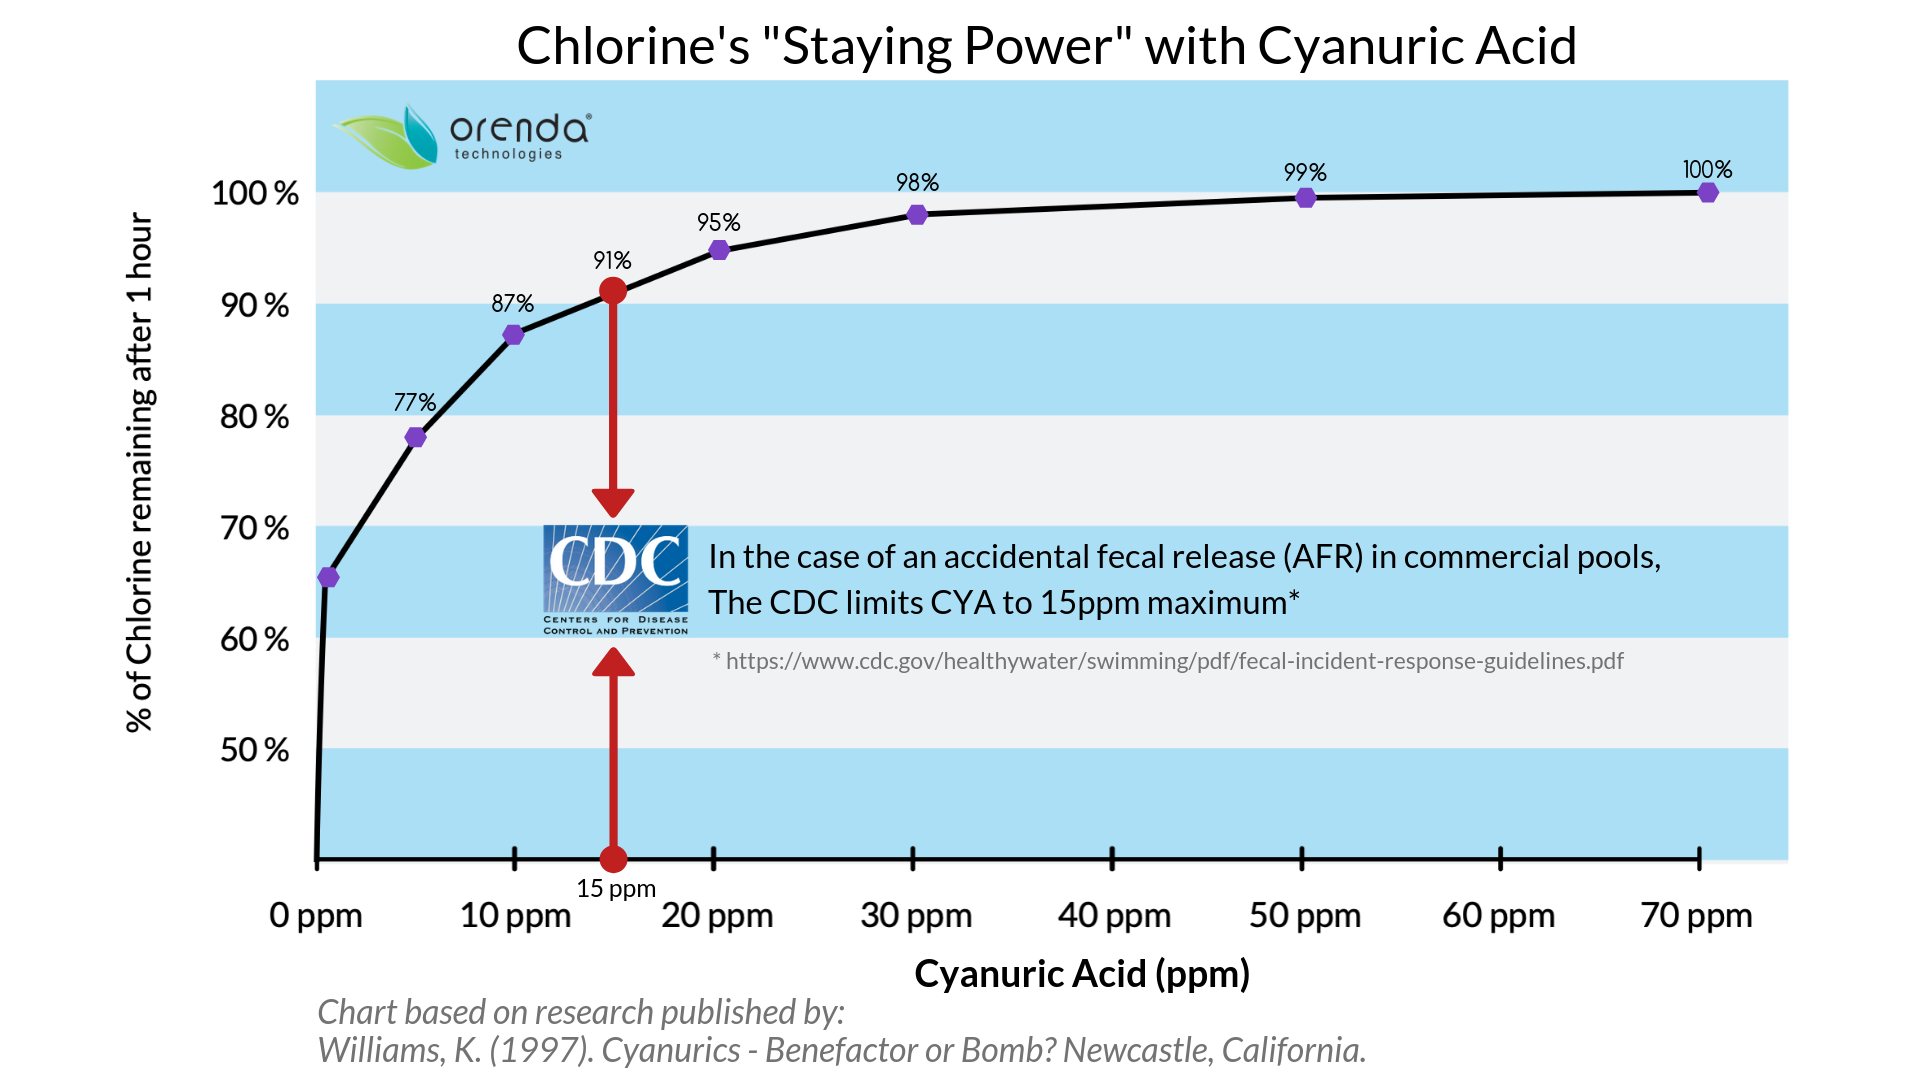 Chlorine Staying Power, CYA, overstabilization, Orenda, cyanuric acid